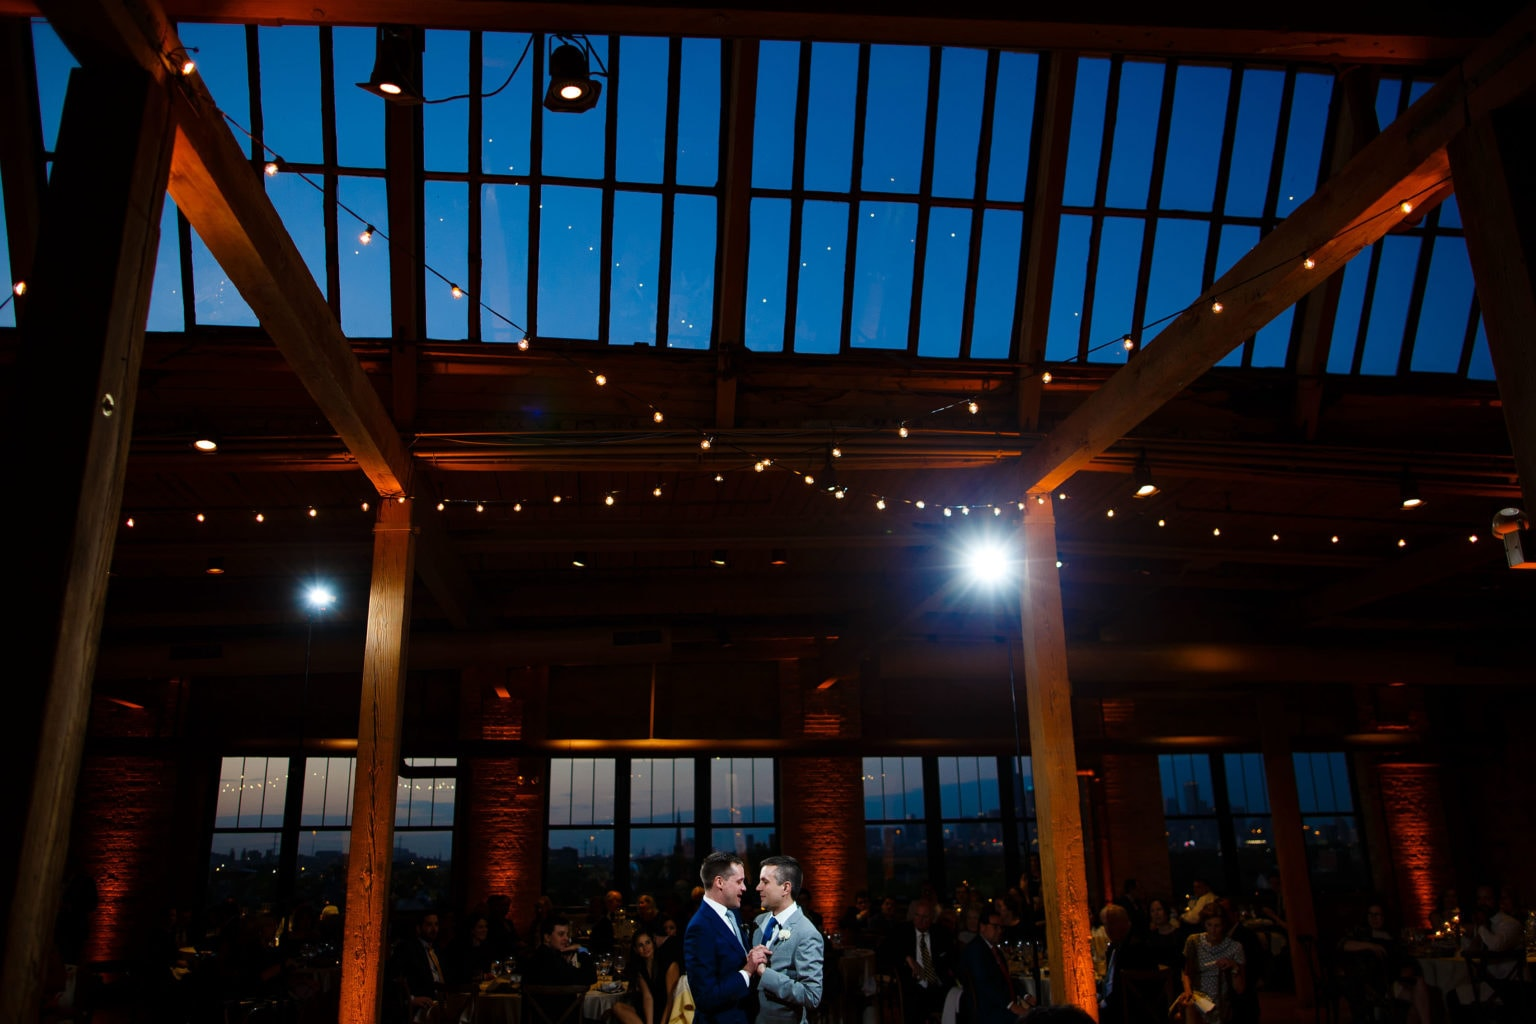 The grooms share a first dance during twilight at their Bridgeport Art Center wedding in Chicago